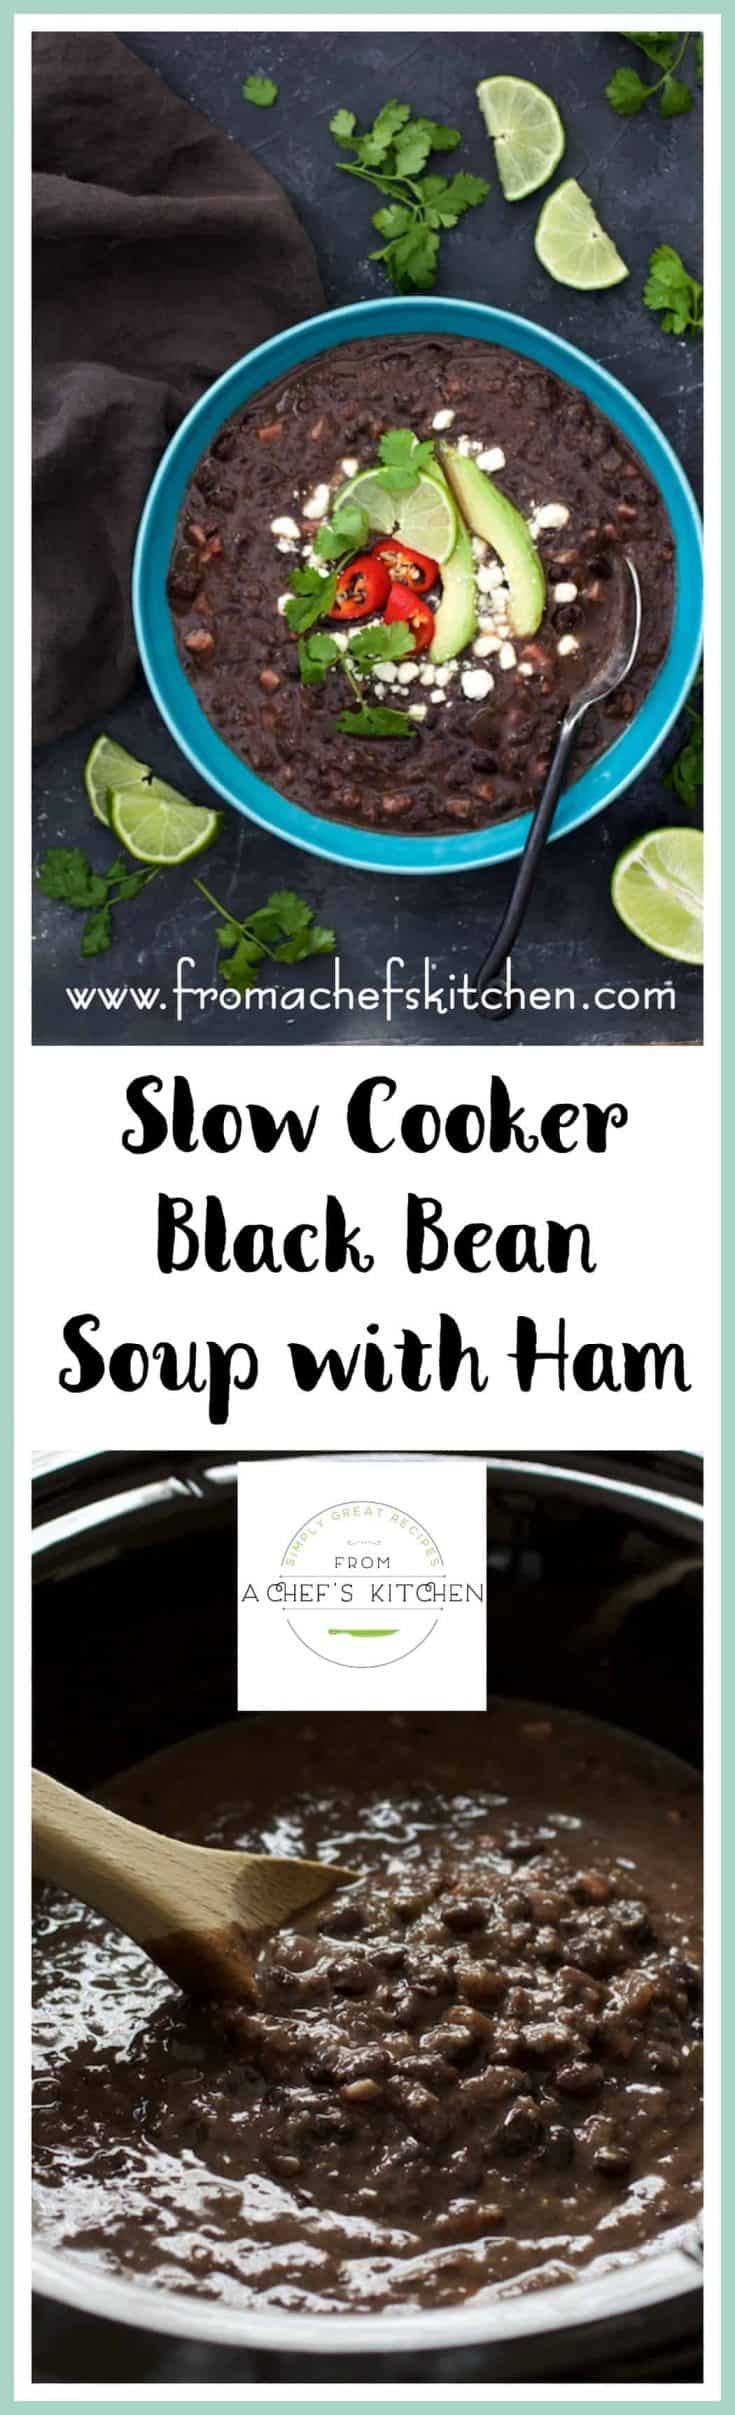 Slow Cooker Black Bean Soup with Ham is the perfect way to make black bean soup.  My tips are guaranteed to get you tender beans every time!  #blackbean #blackbeansoup #slowcooker #soup